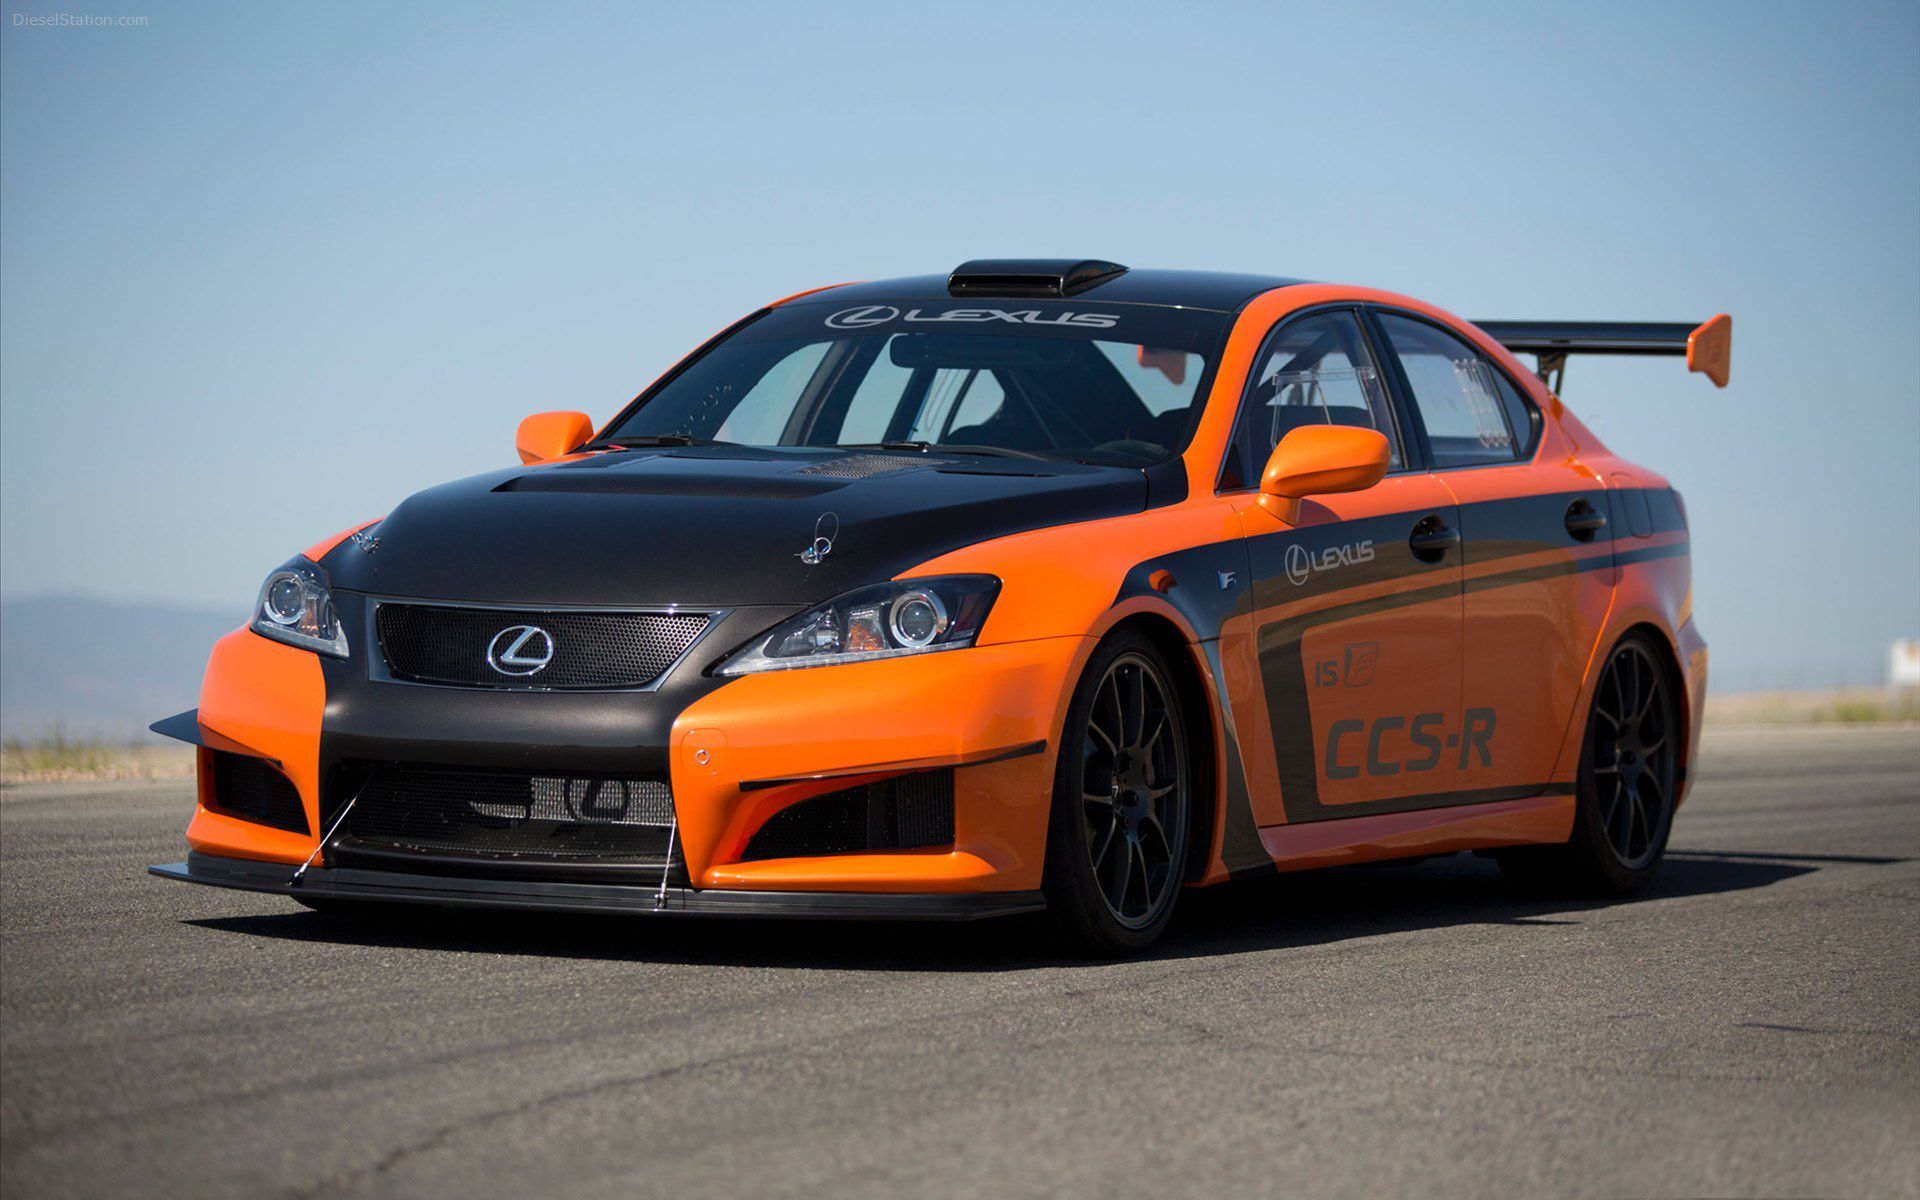 Lexus Is F Ccs R Race Car 2012 Photo Download Wallpaper Image Sports Cars Ferrari Lexus Isf Sports Cars